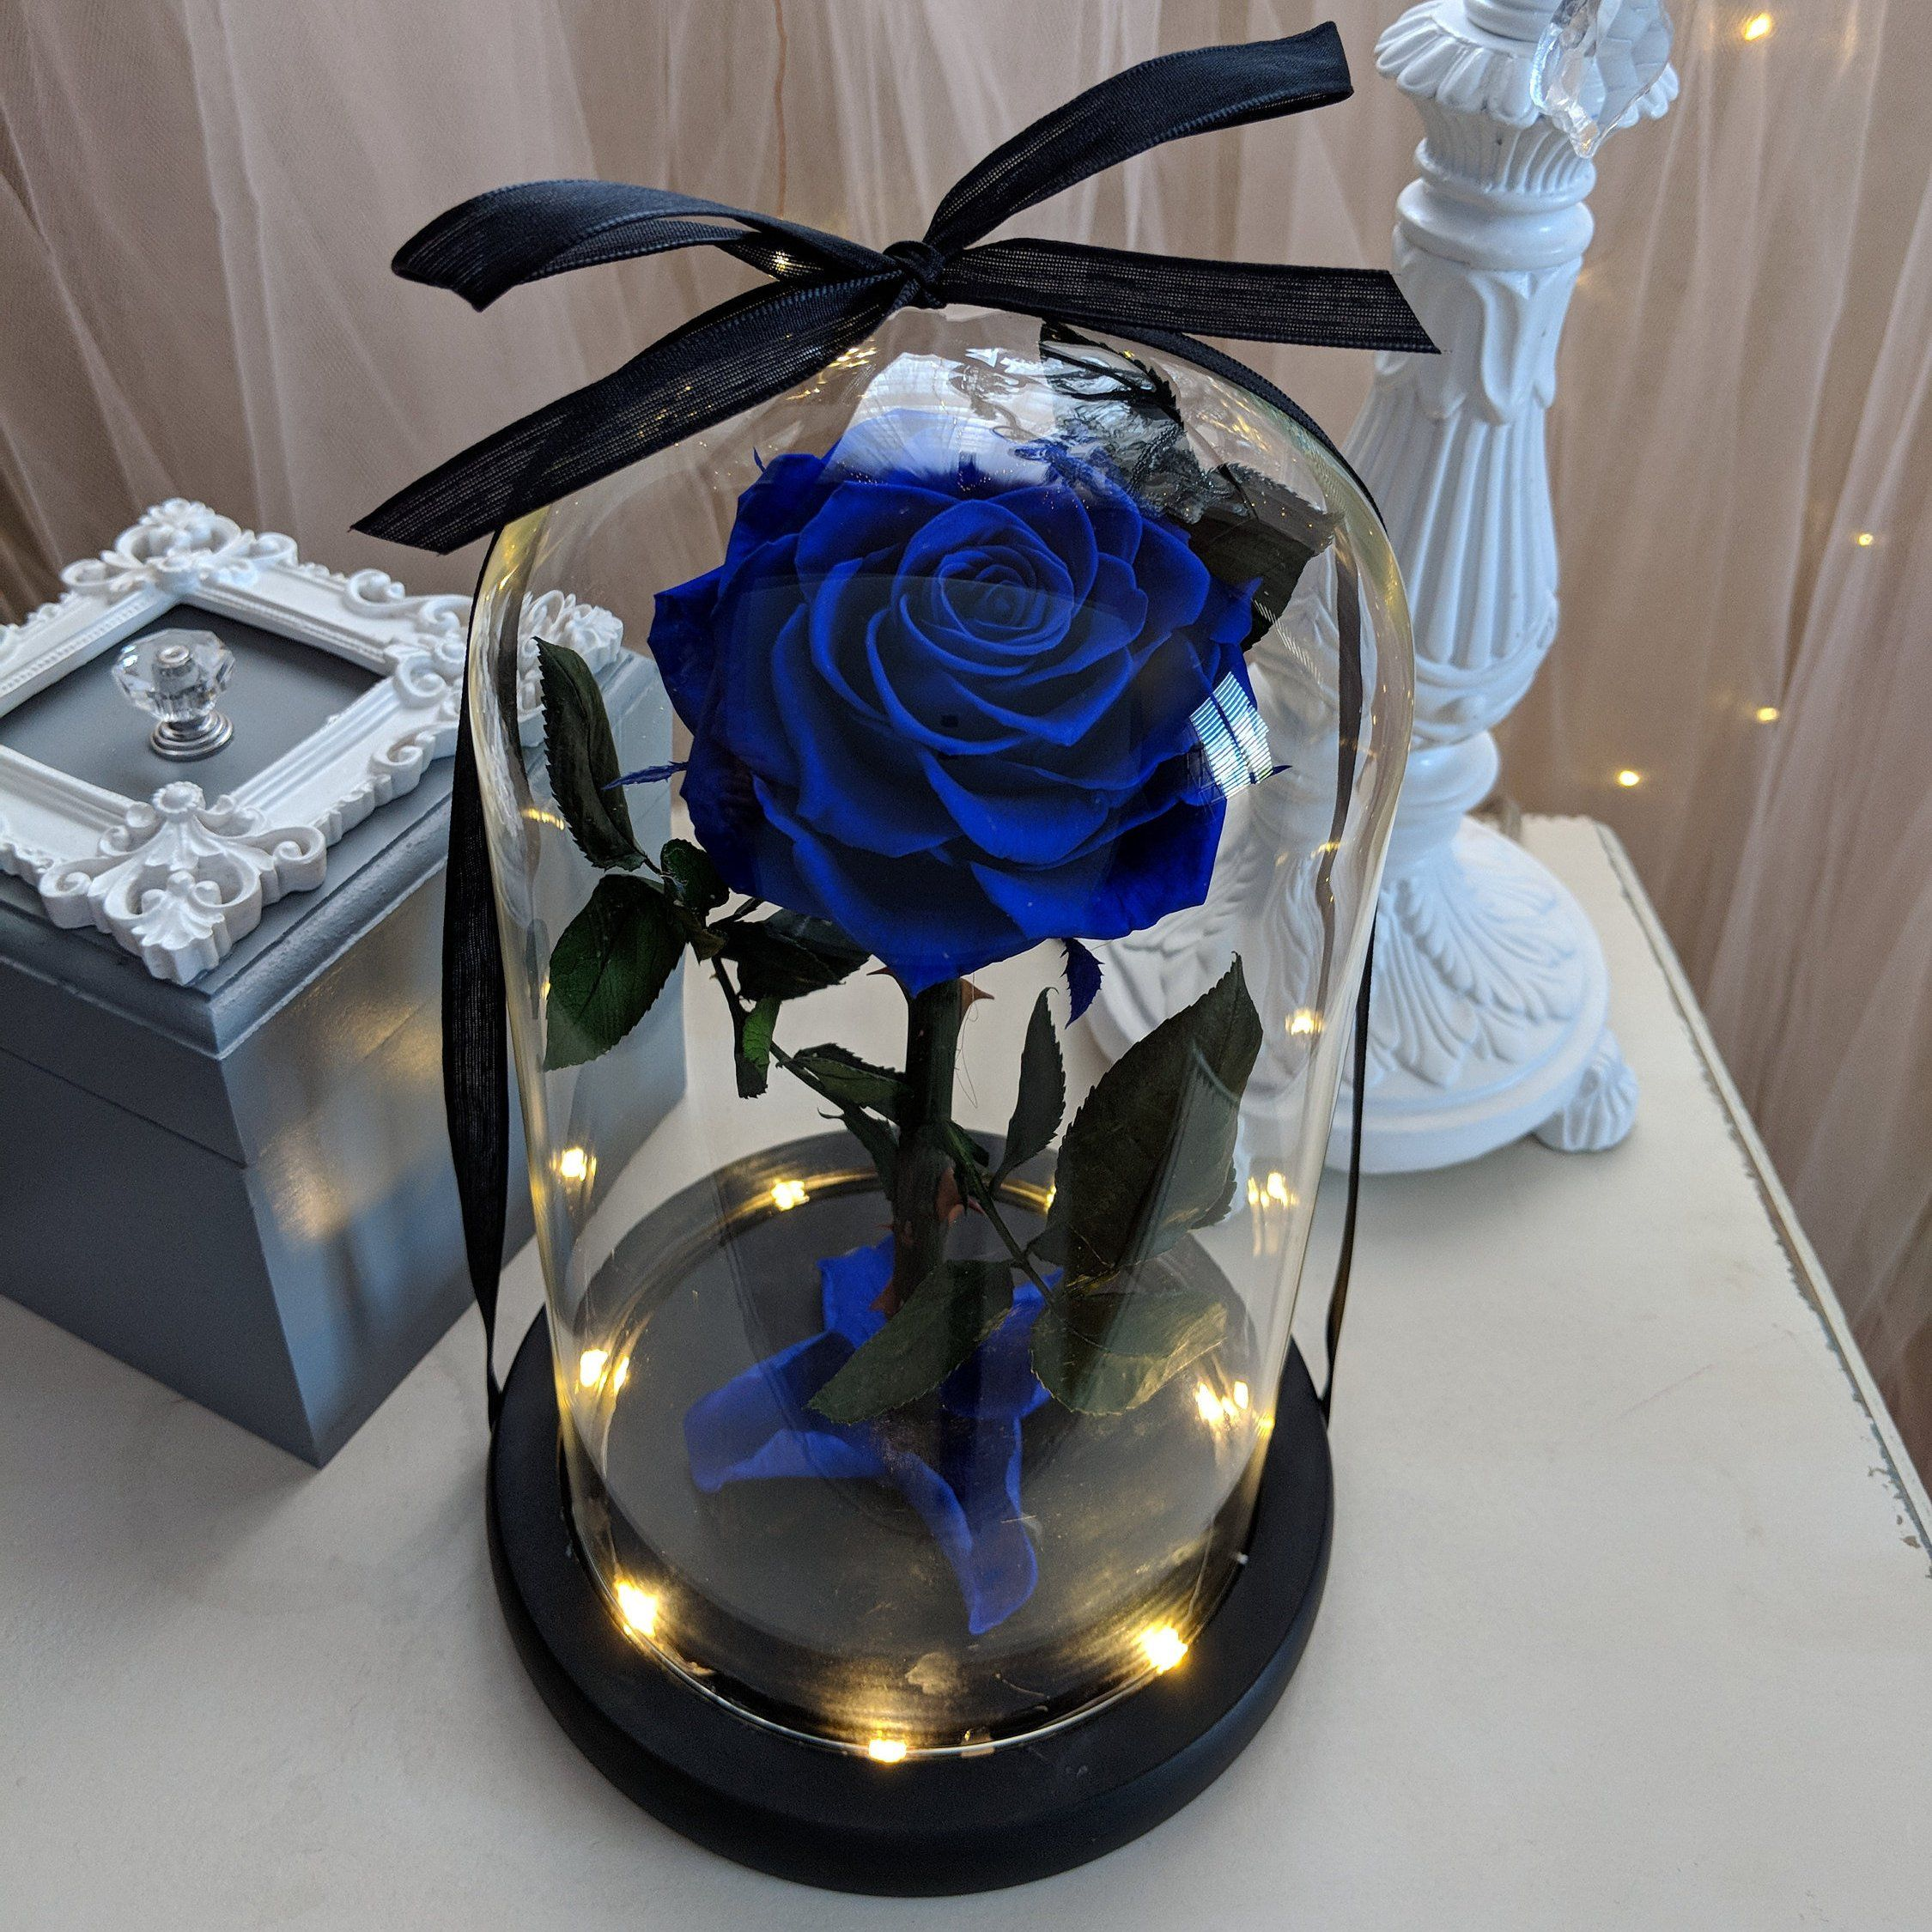 Blue Rose In Glass Dome Blue Enchanted Forever Rose Beauty And